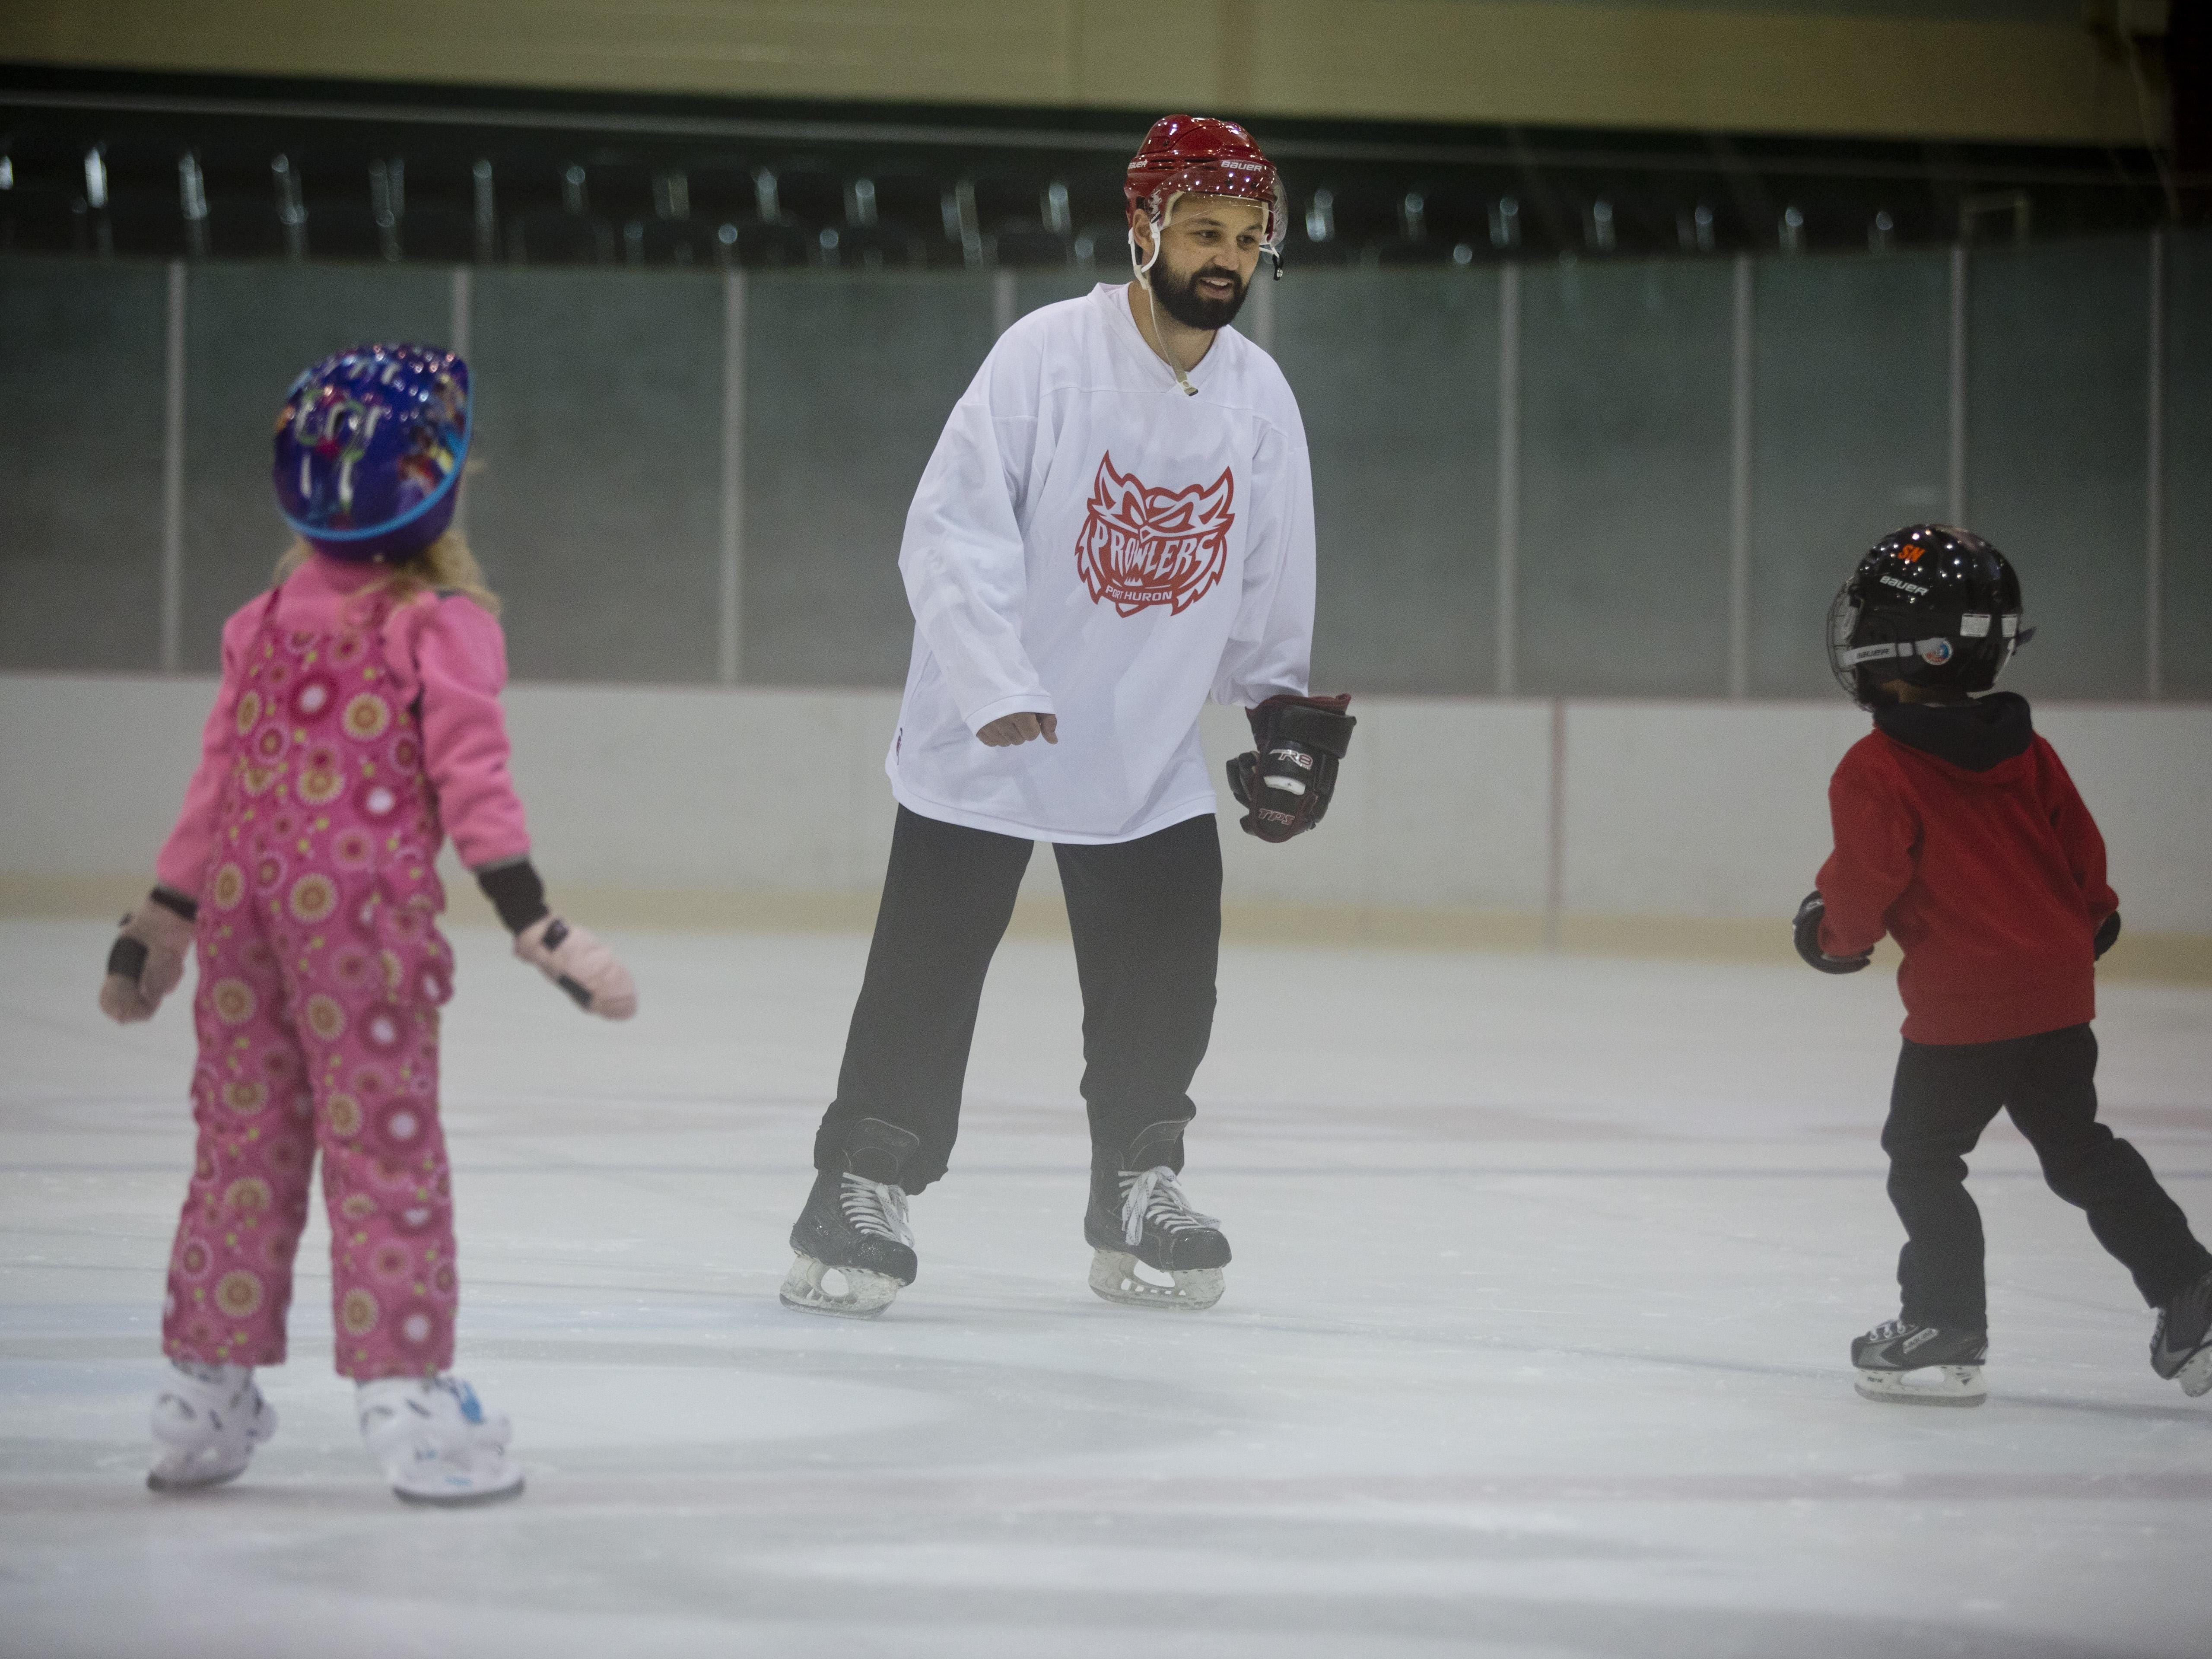 Port Huron Prowlers assistant coach and player Joe Pace works with Tori Stein, 6, and Brayden Nichols, 5, during a learn to skate program Wednesday, October 7, 2015 at McMorran Arena.